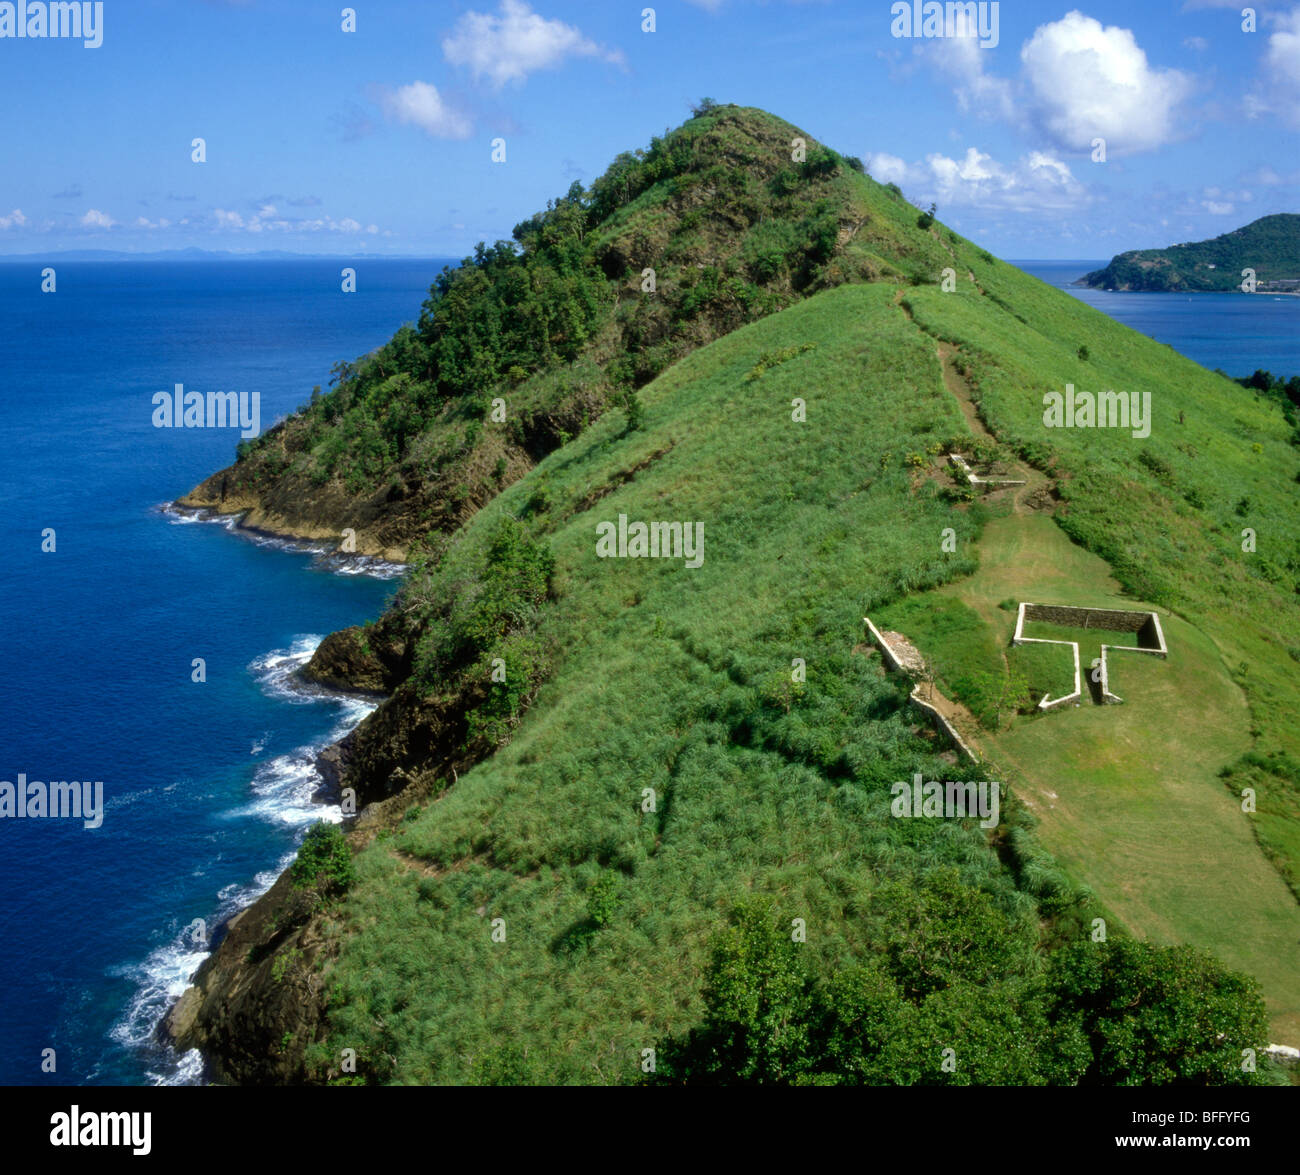 Facts About St Lucia Island